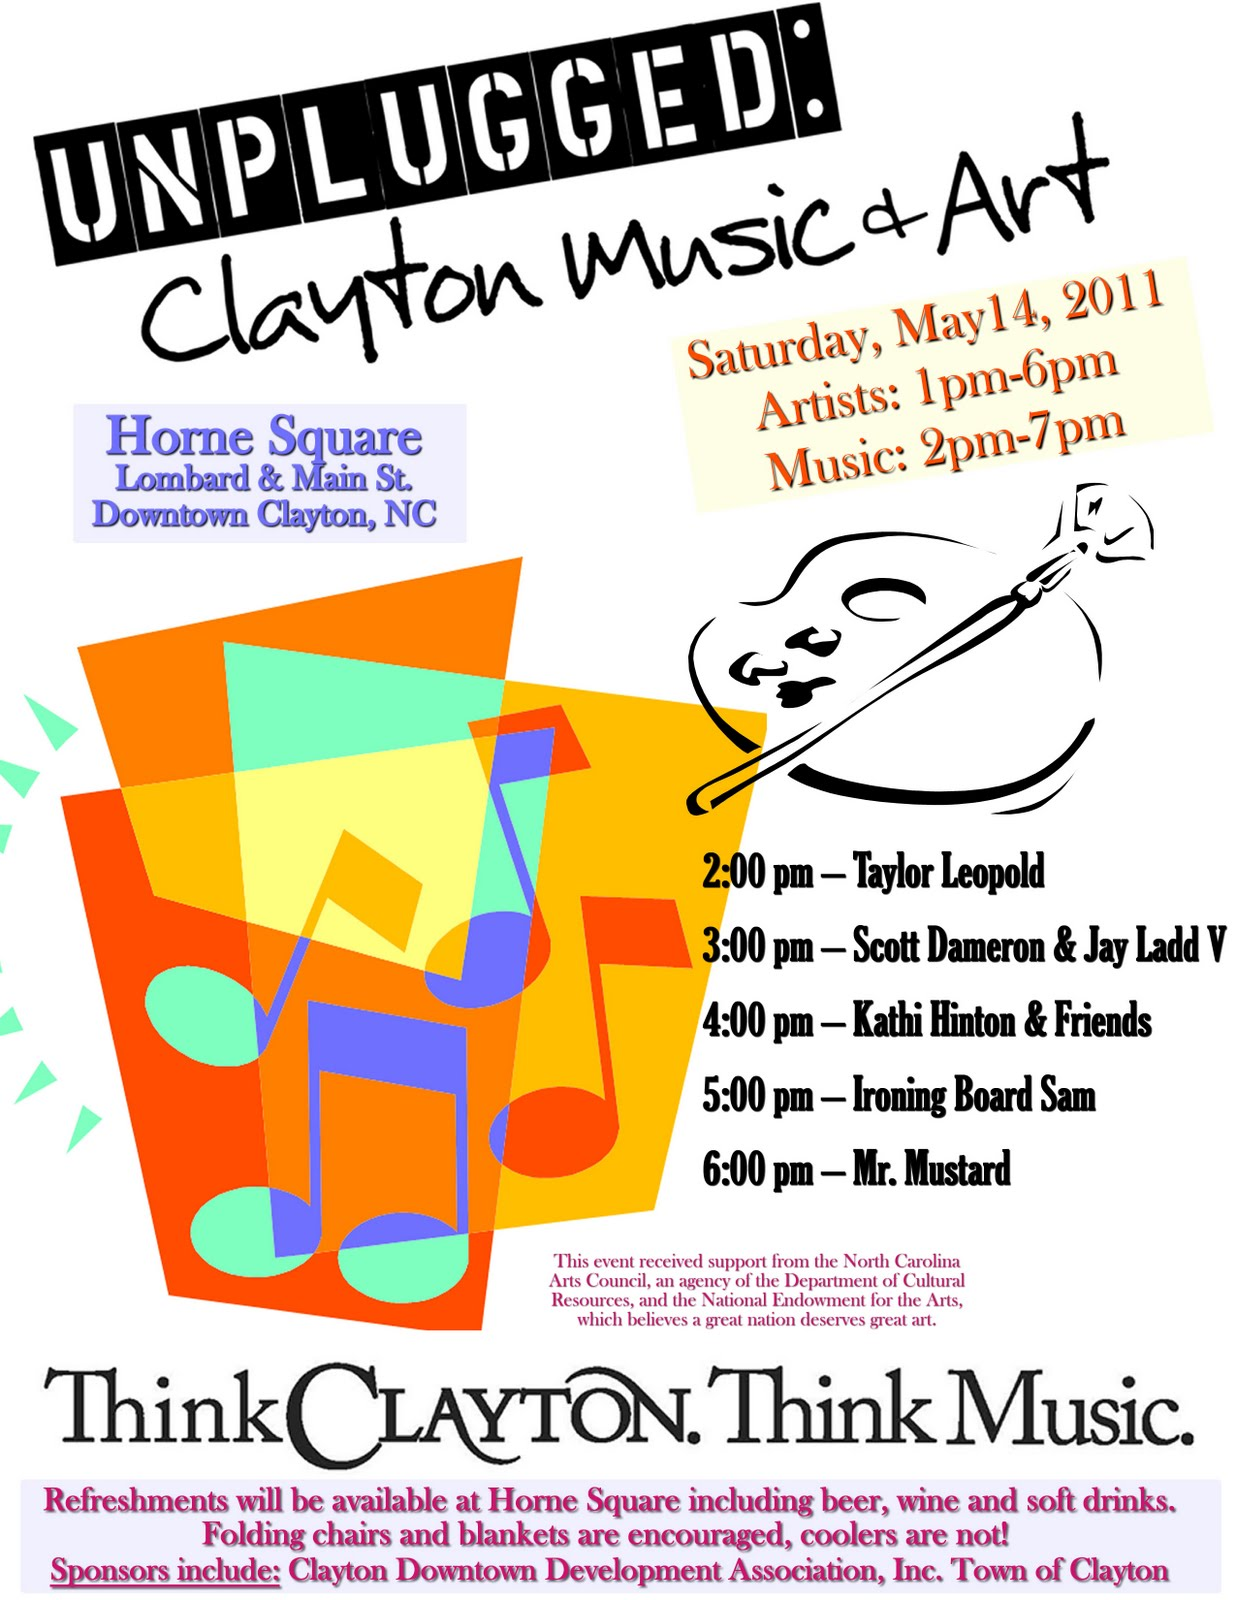 Downtown Clayton Nc Unplugged Clayton Music Art Poster